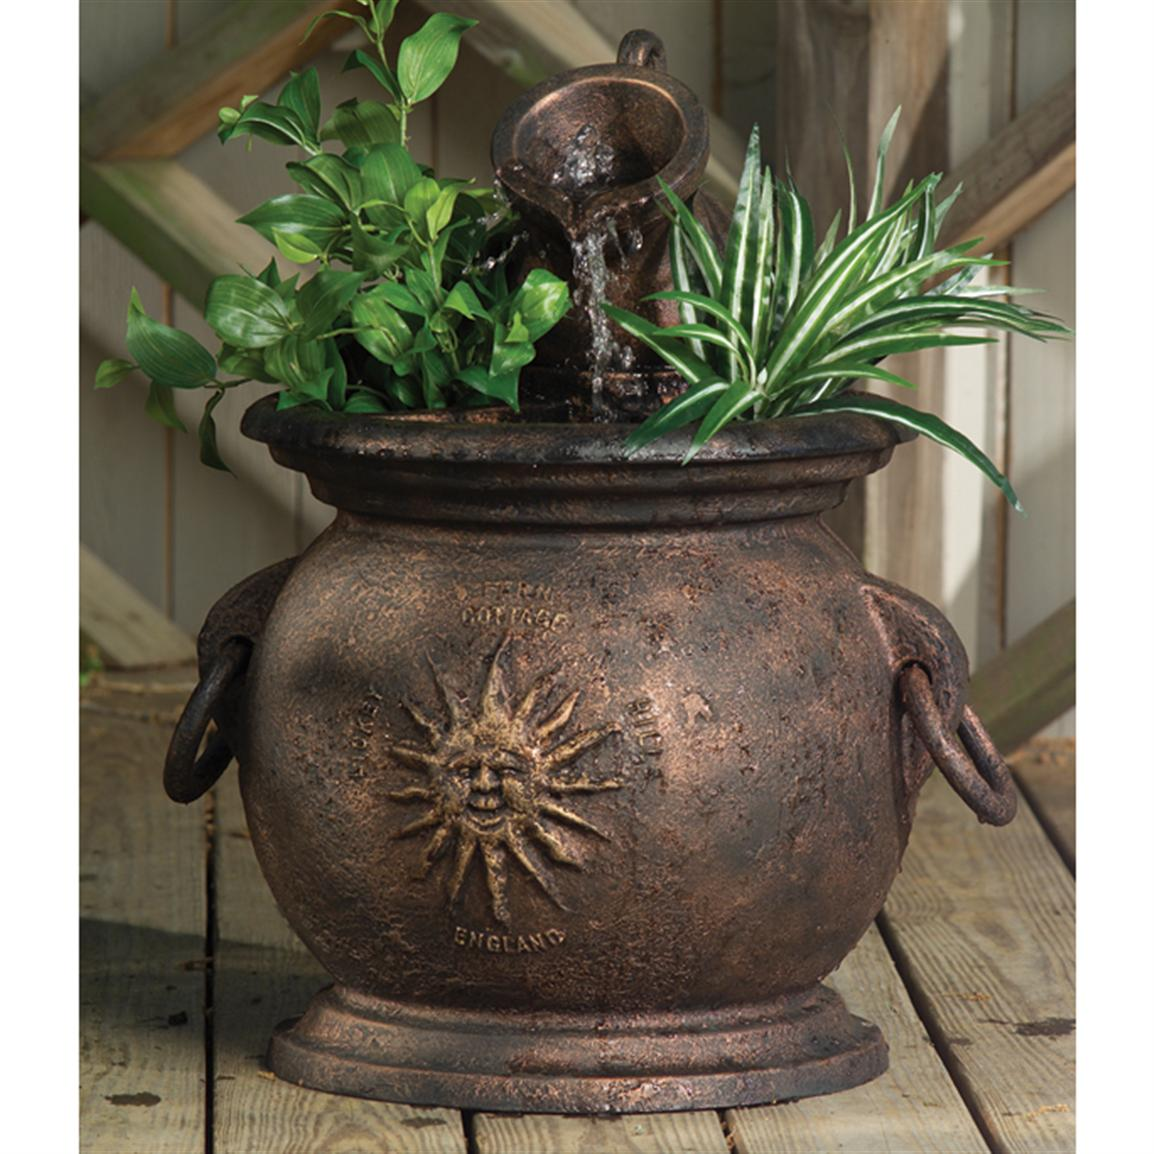 Classical Fountains® Copper Kettle Fountain with Planter